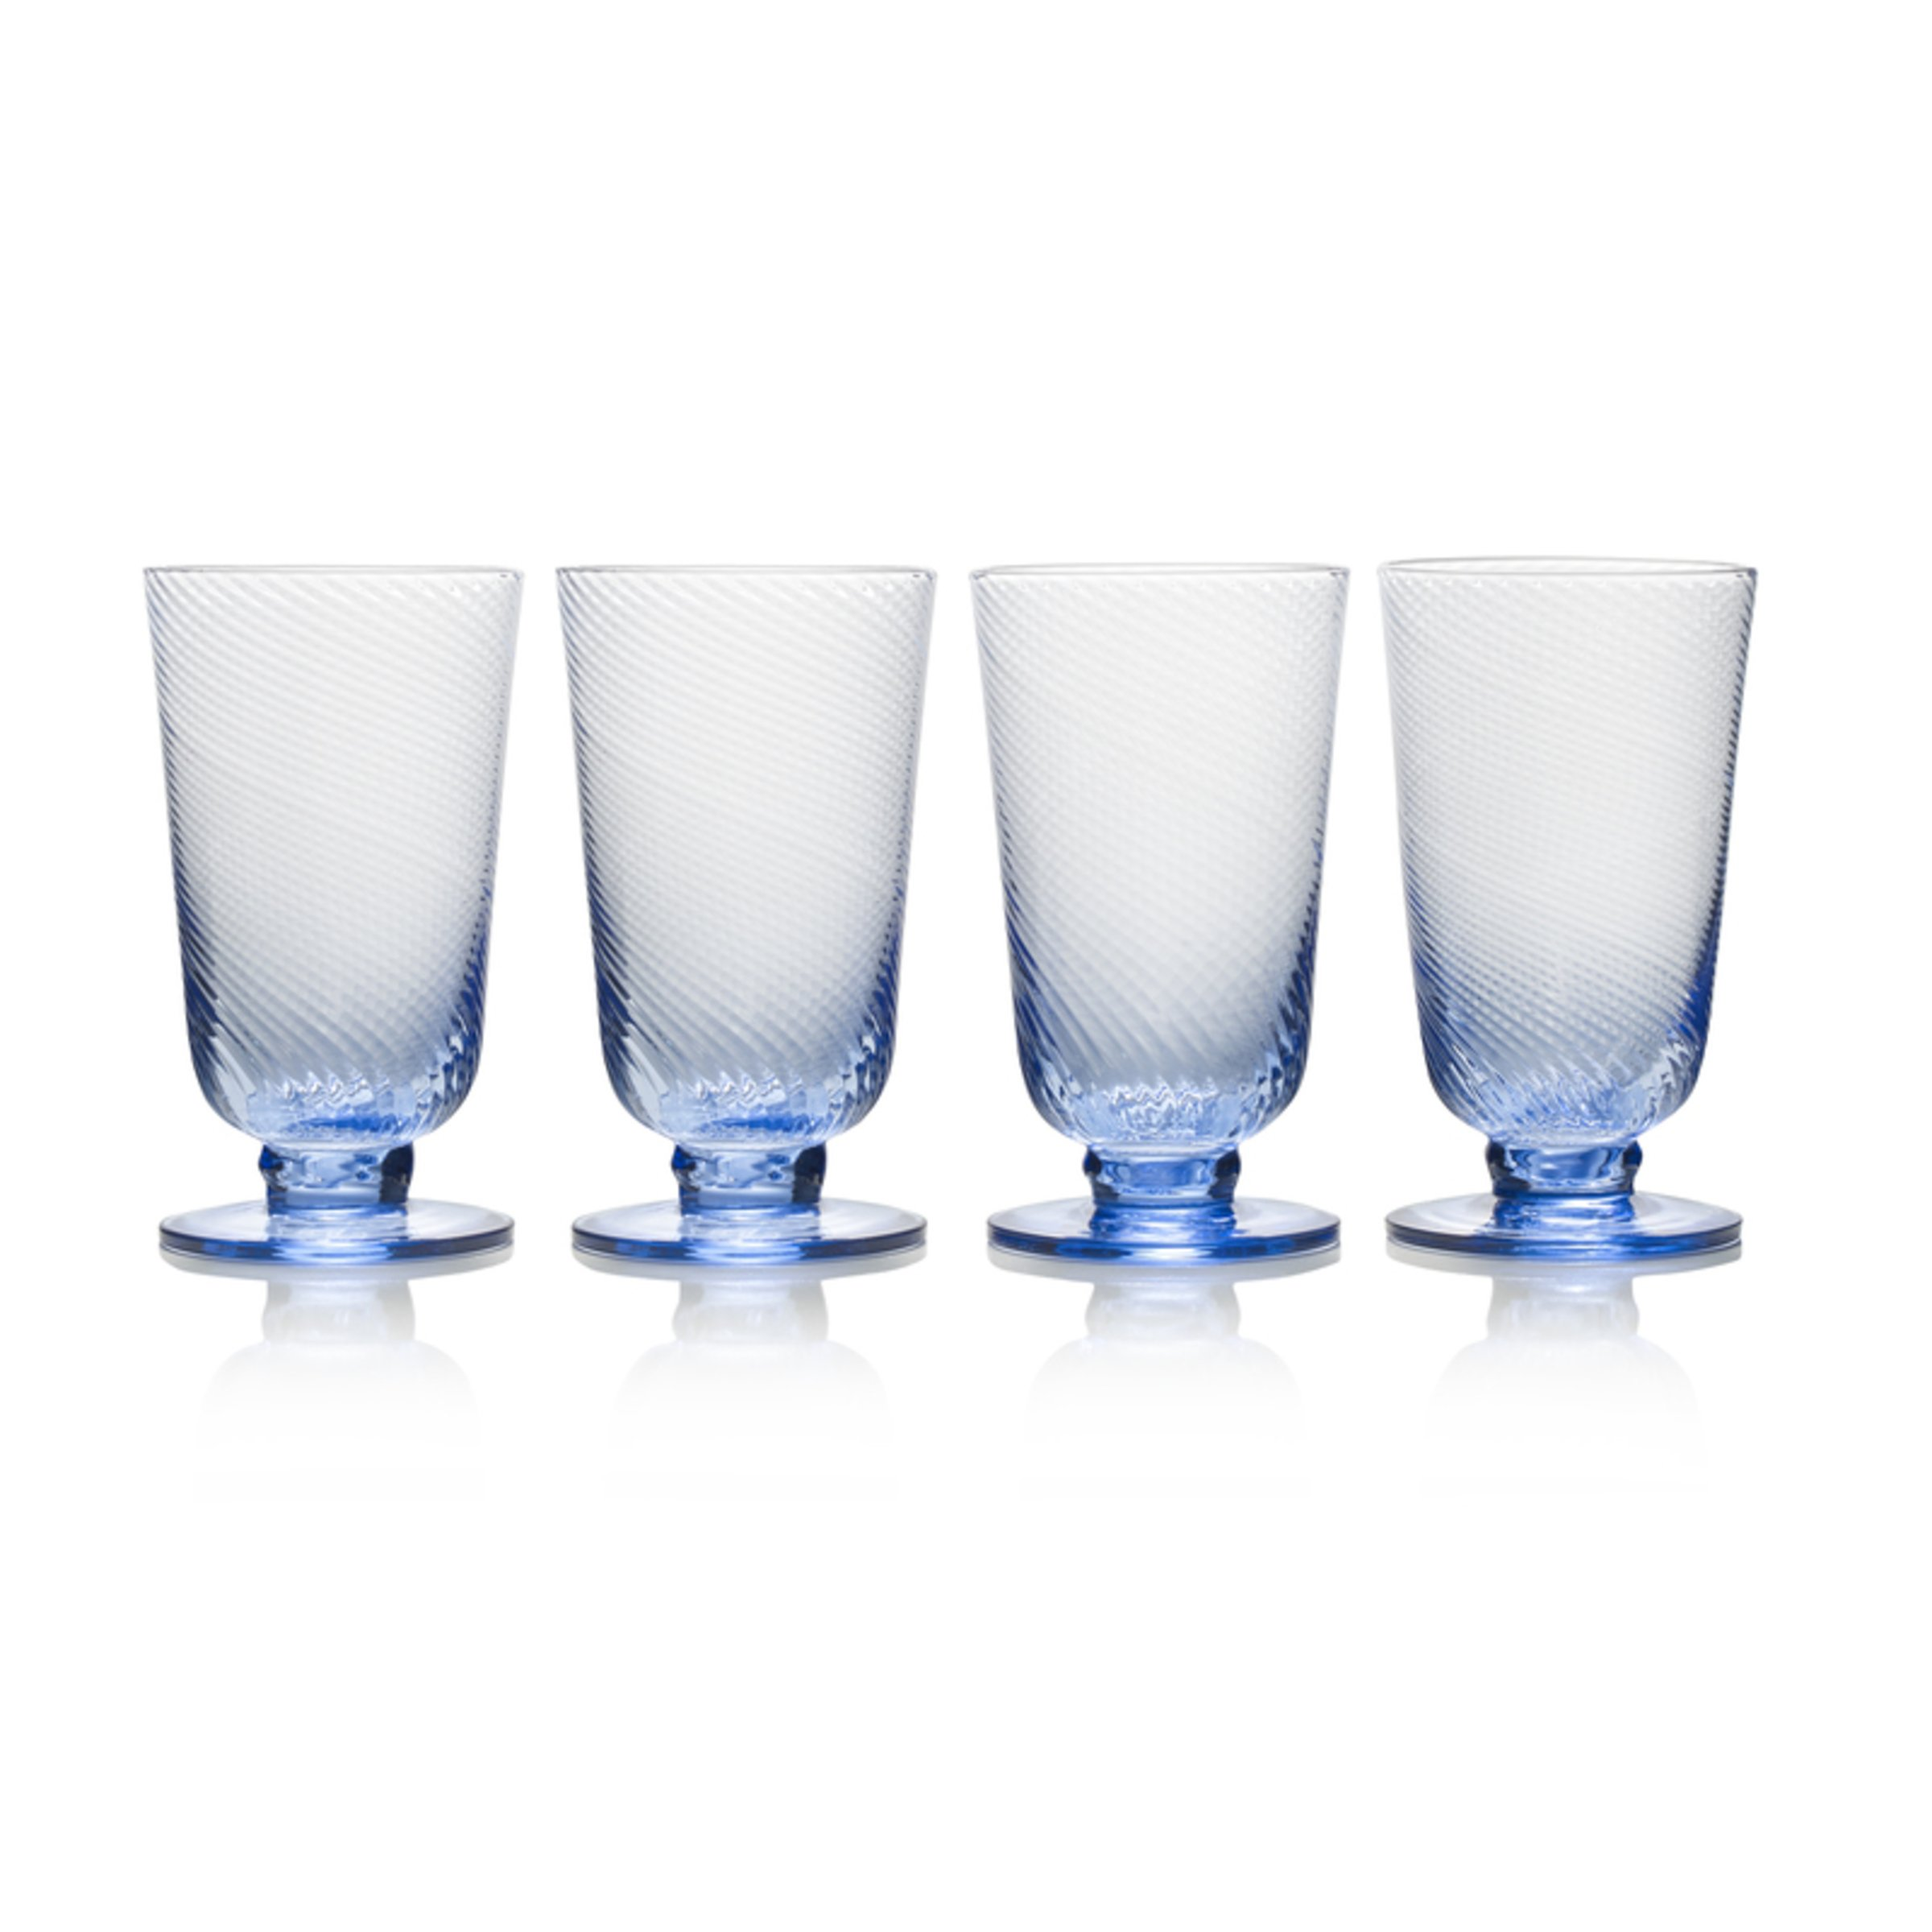 Mikasa 5228378 Avalon Iced Beverage Glass Set of 4, 15-Ounce Blue